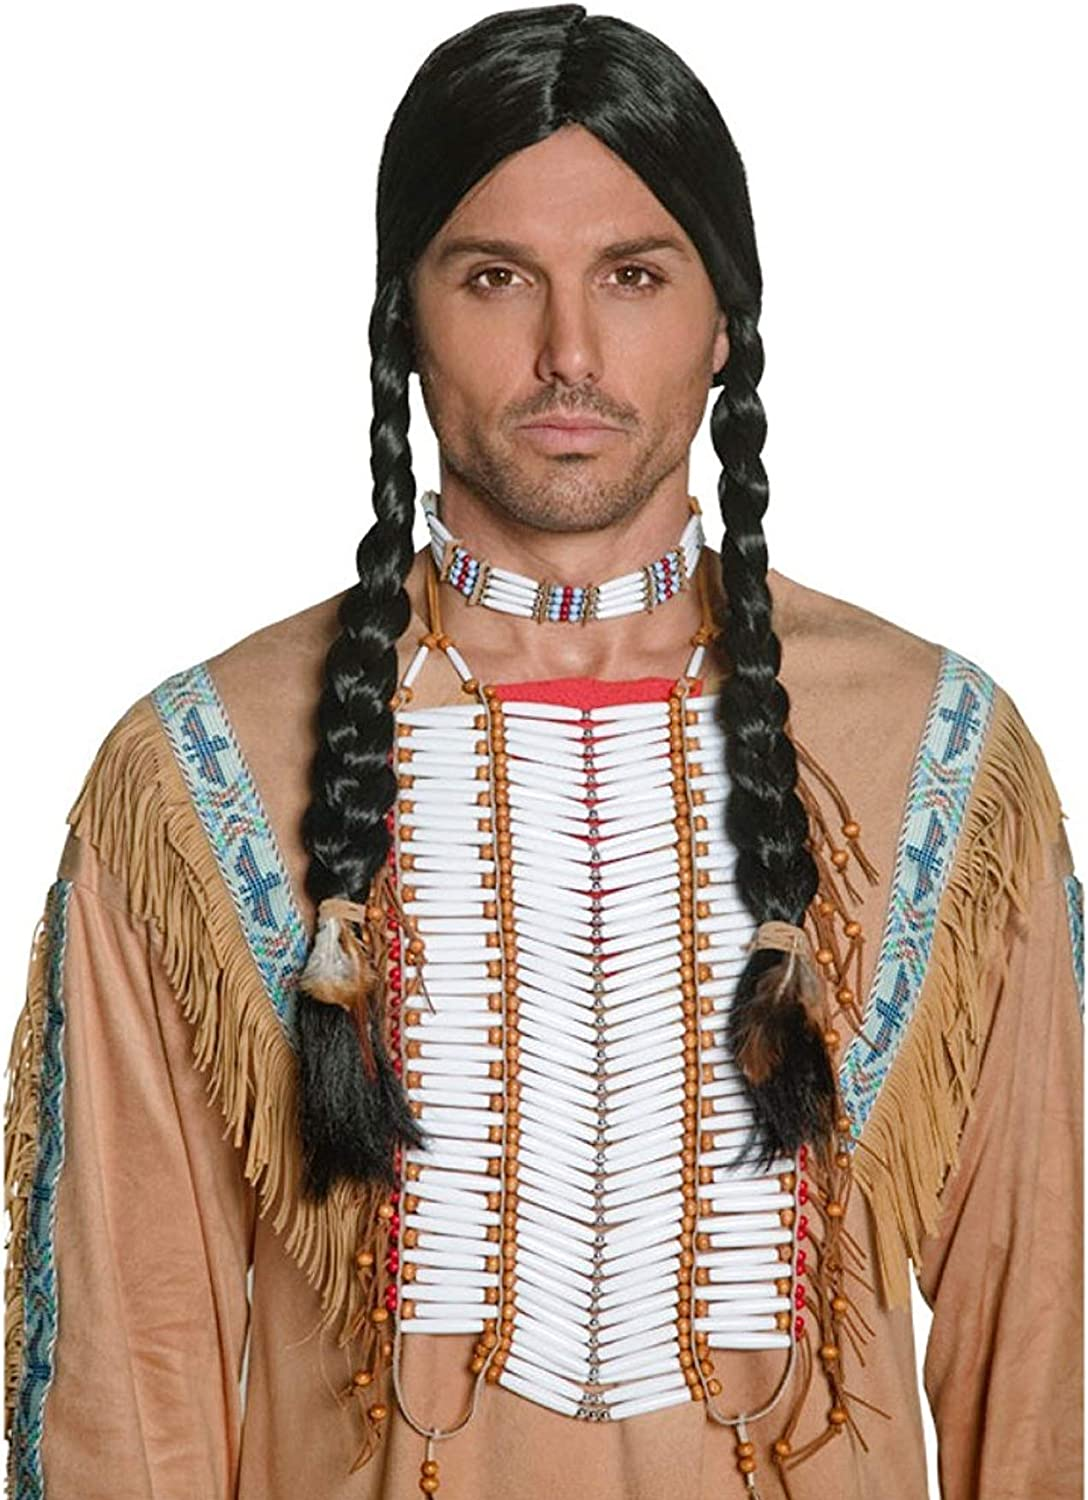 Oklahoma City Mall Western Authentic New product! New type Indian Costume Accessory Breastplate